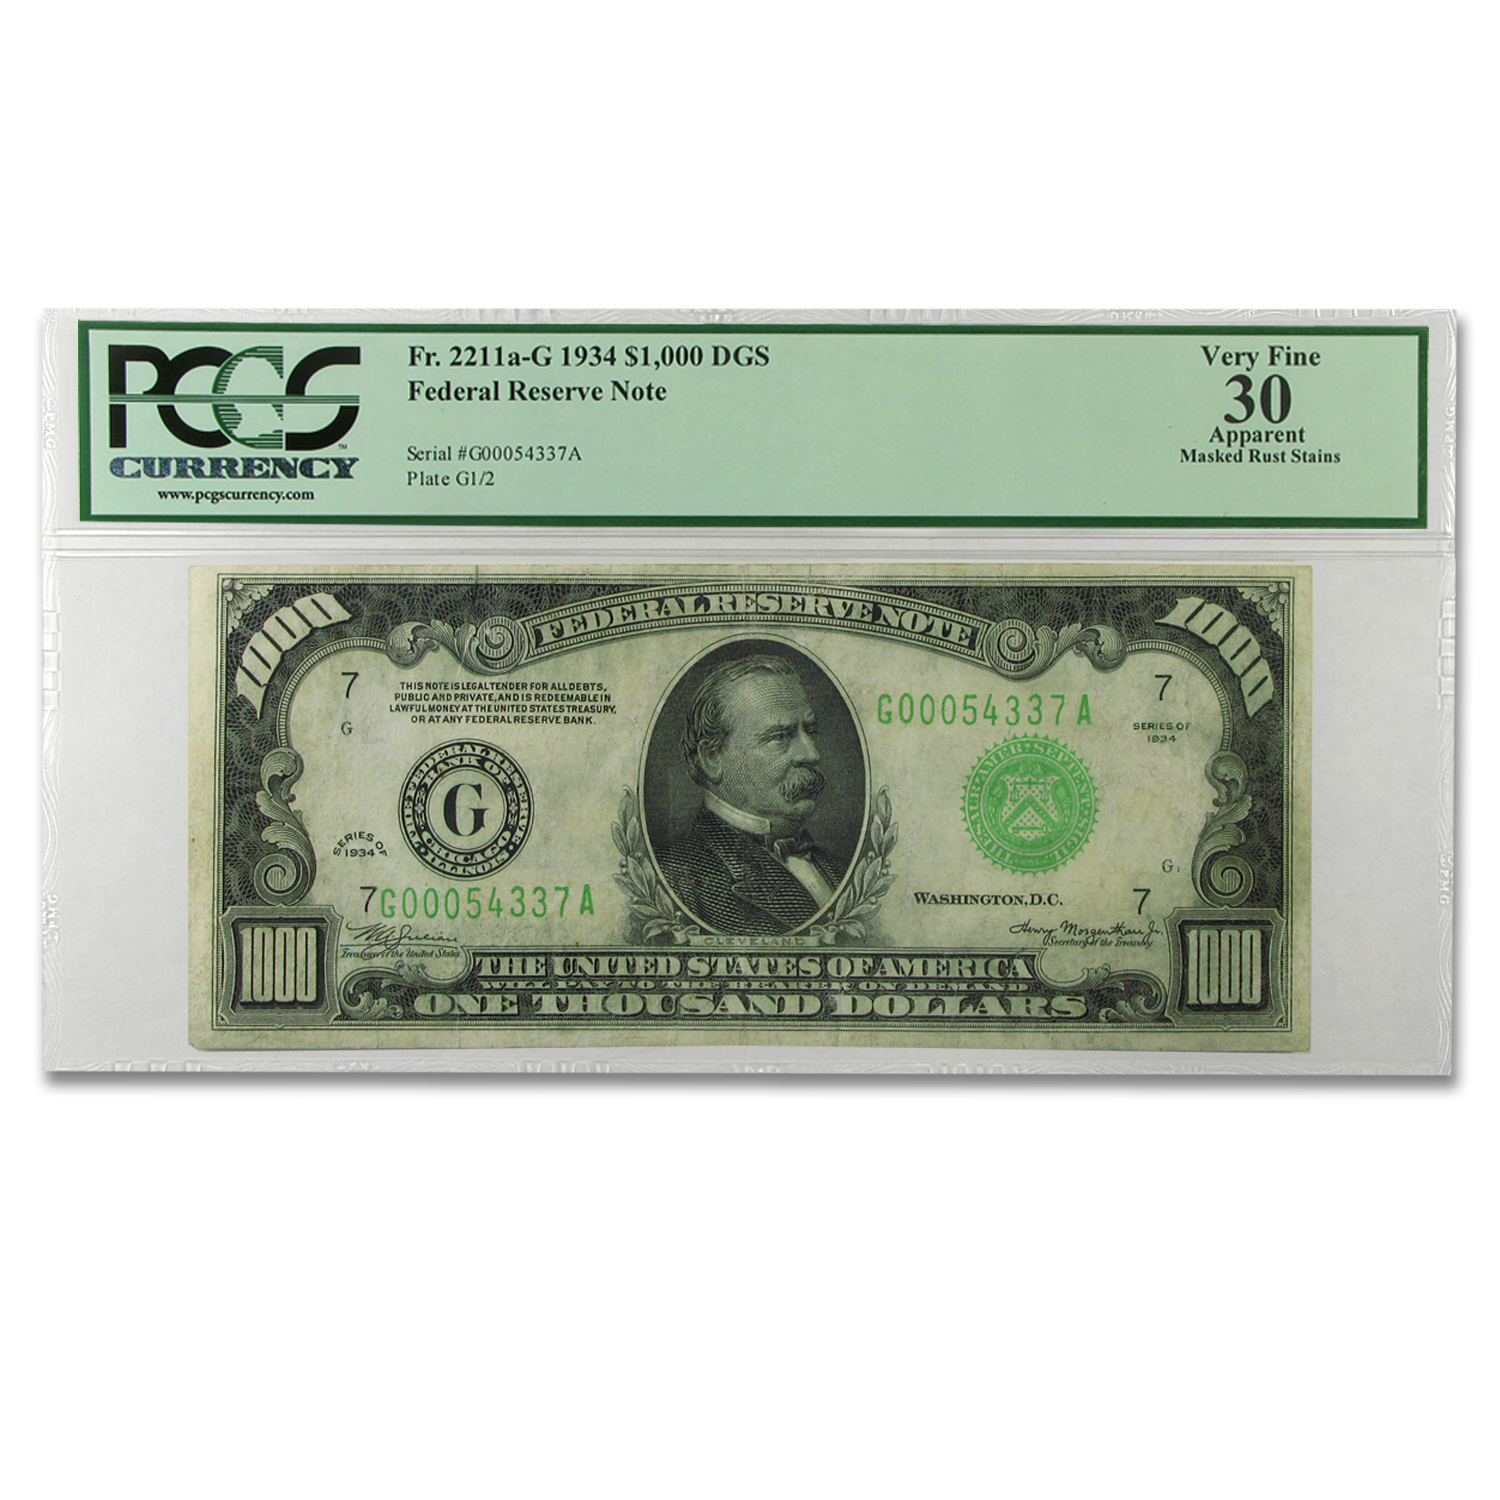 1934 (G-Chicago) $1,000 FRN VF-30 Apparent PCGS